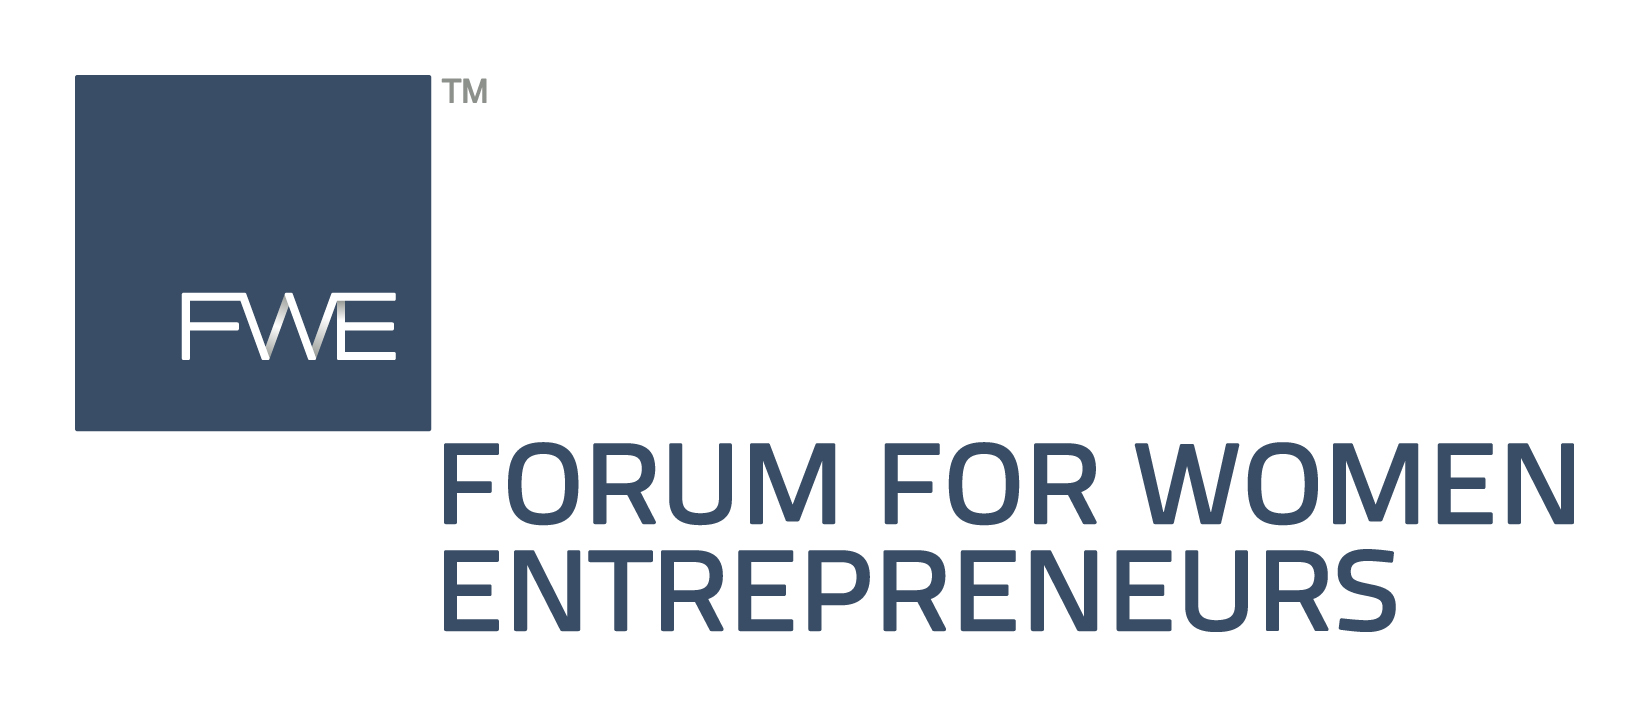 The Forum for Women Entrepreneurs